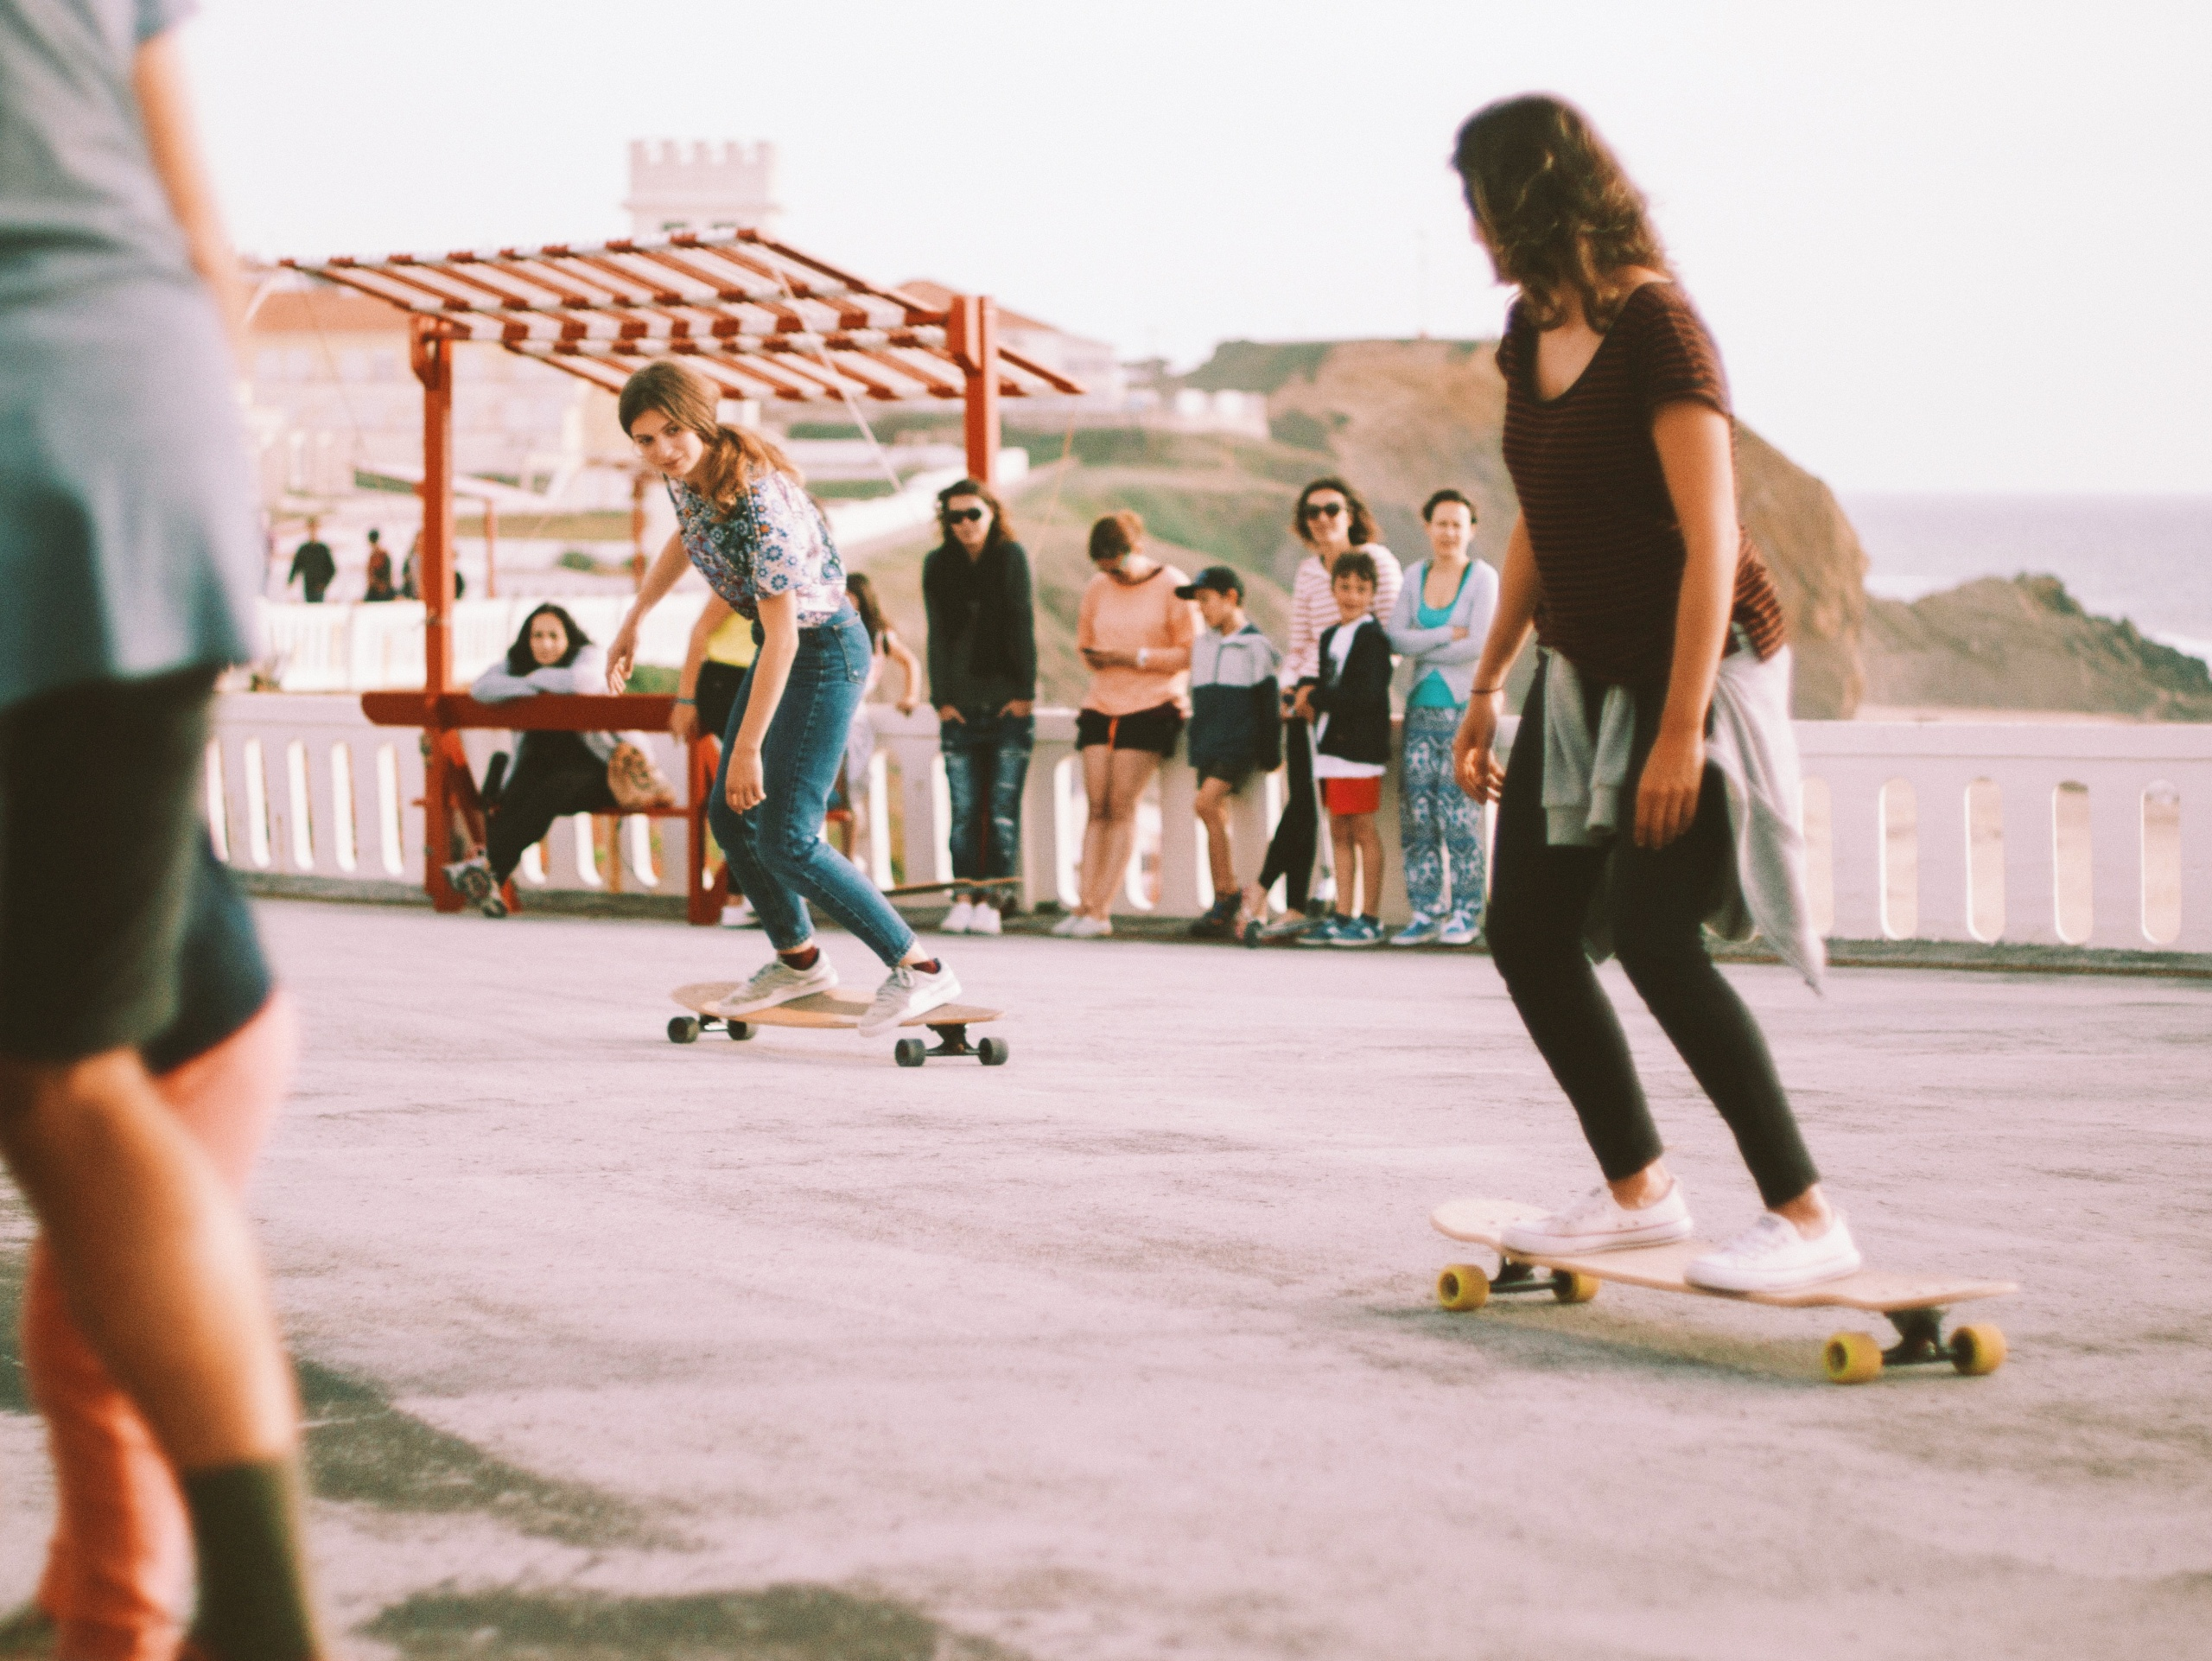 Longboarding girl in Portugal